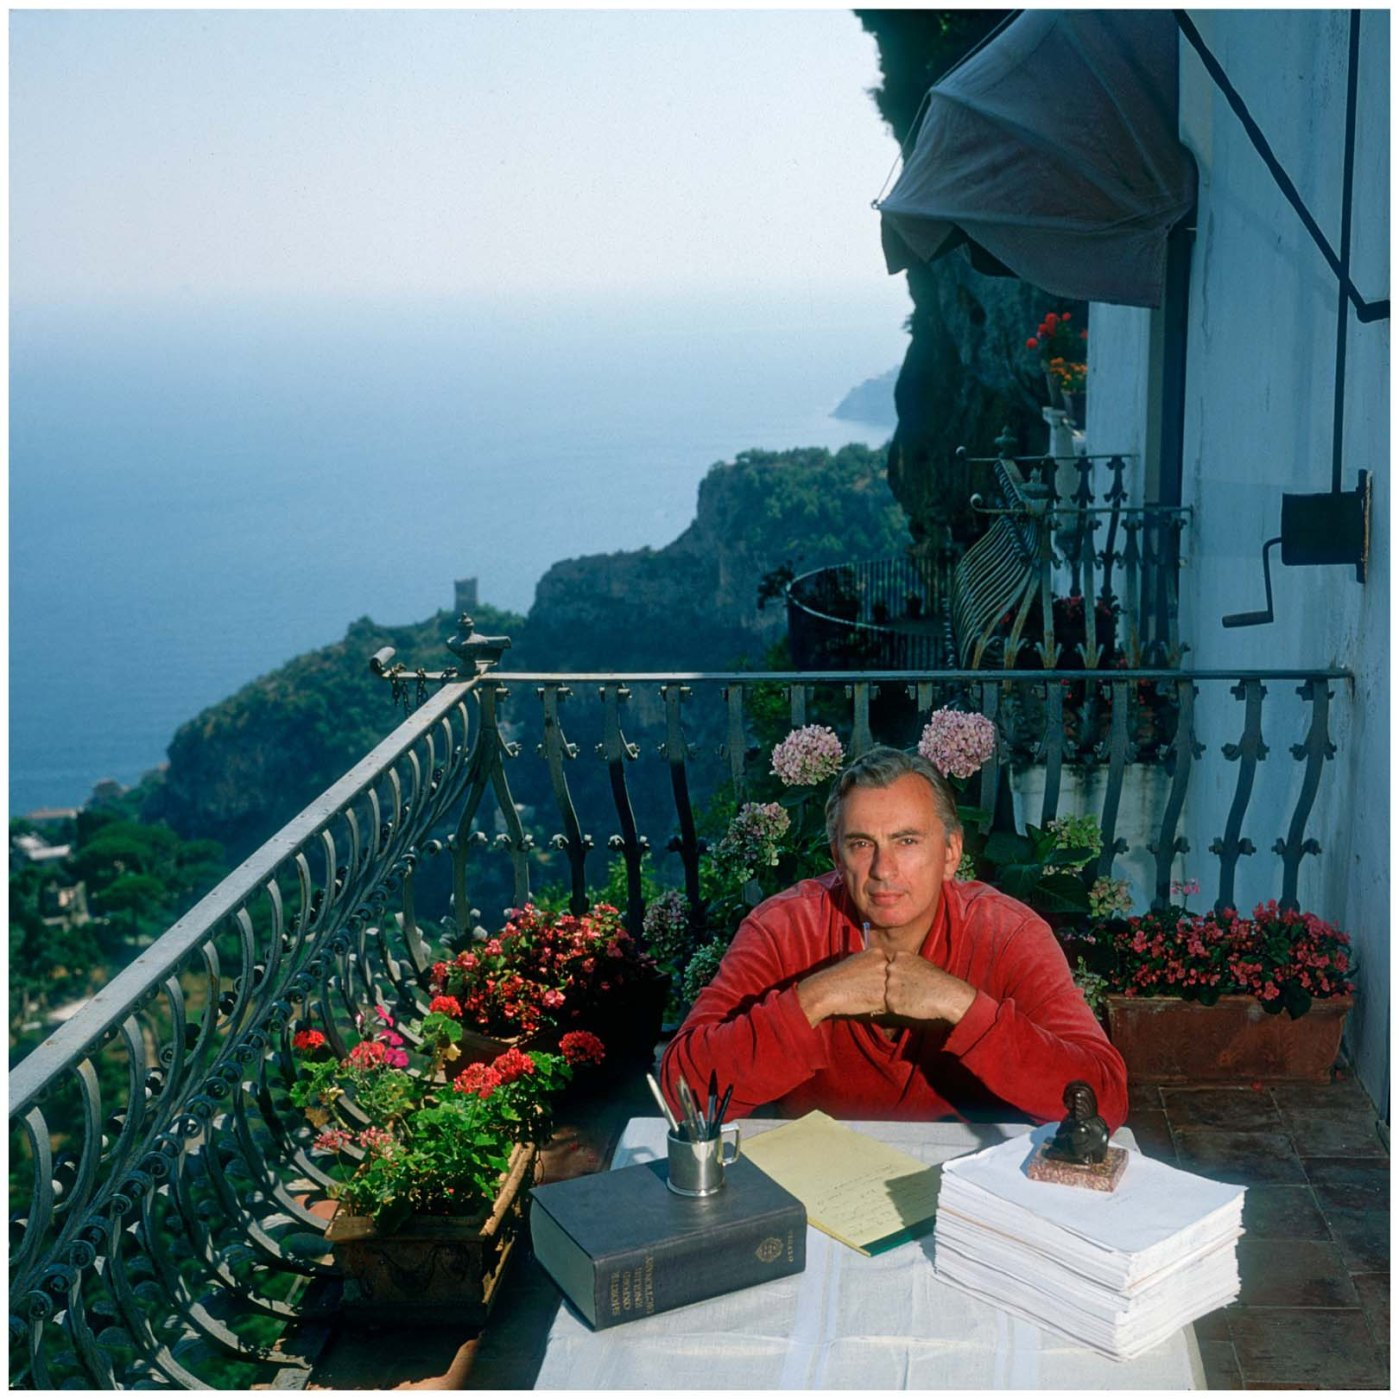 gore vidal 1979 copy pleasurephoto